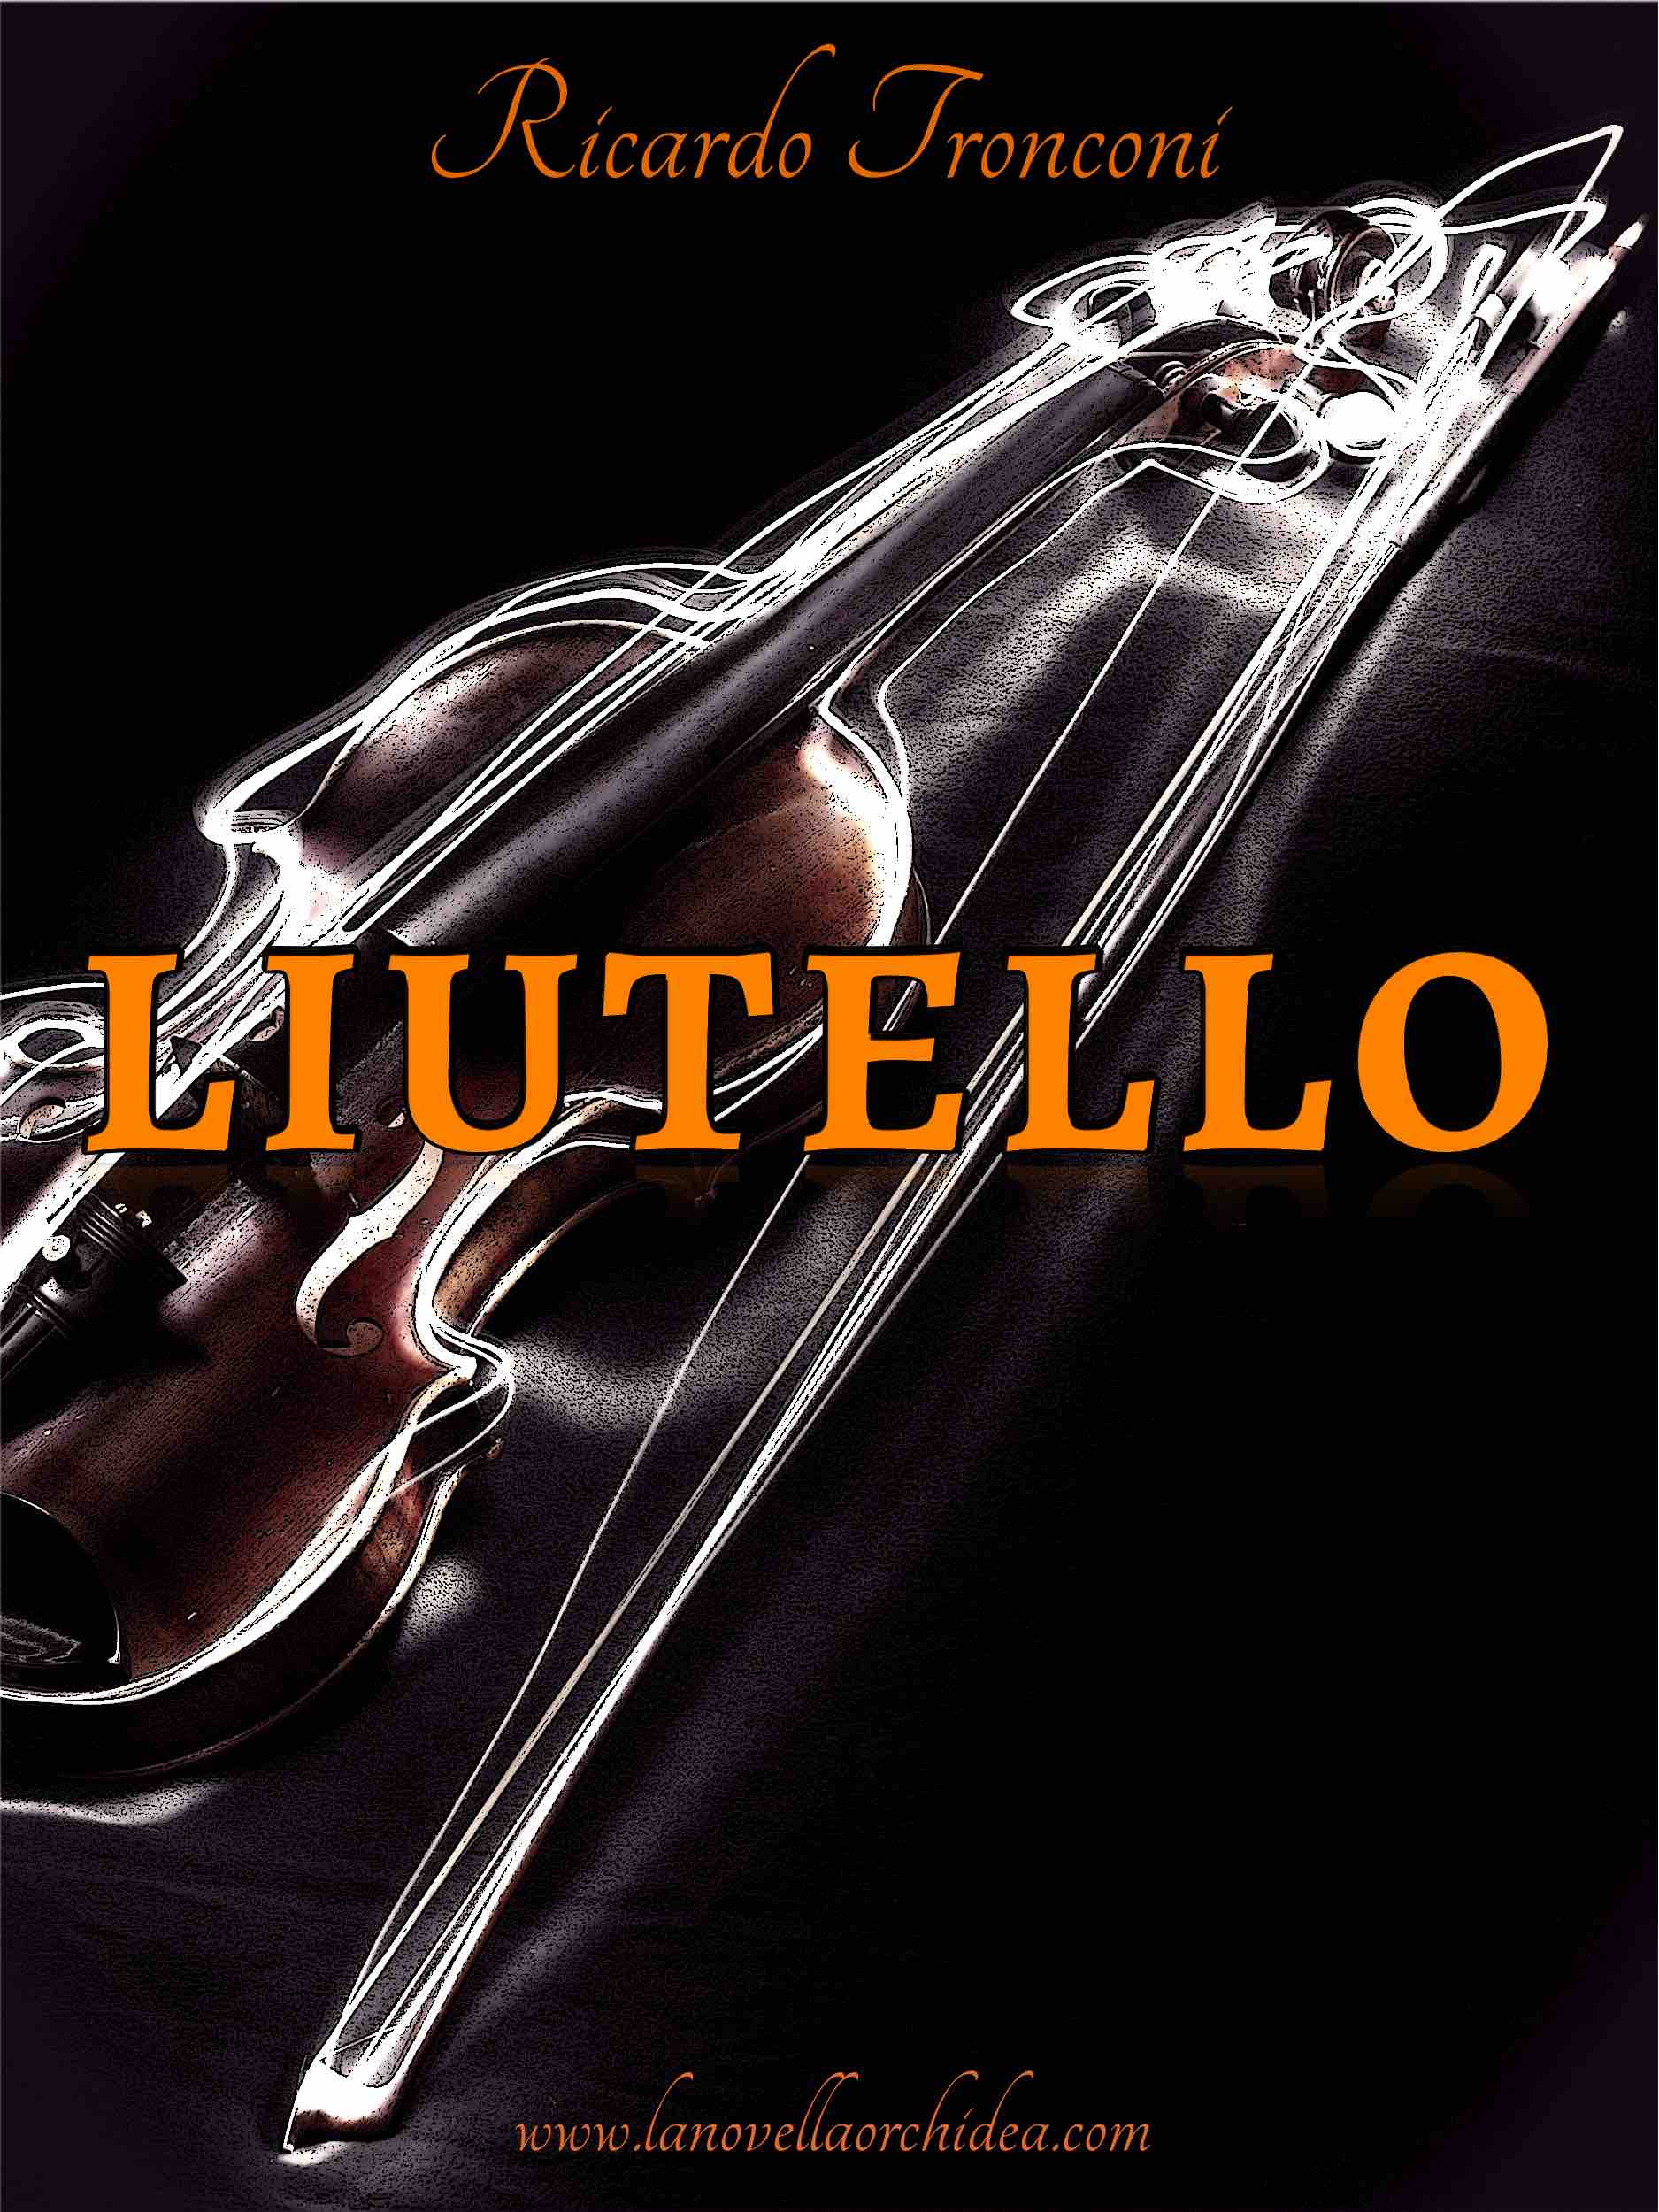 liutello